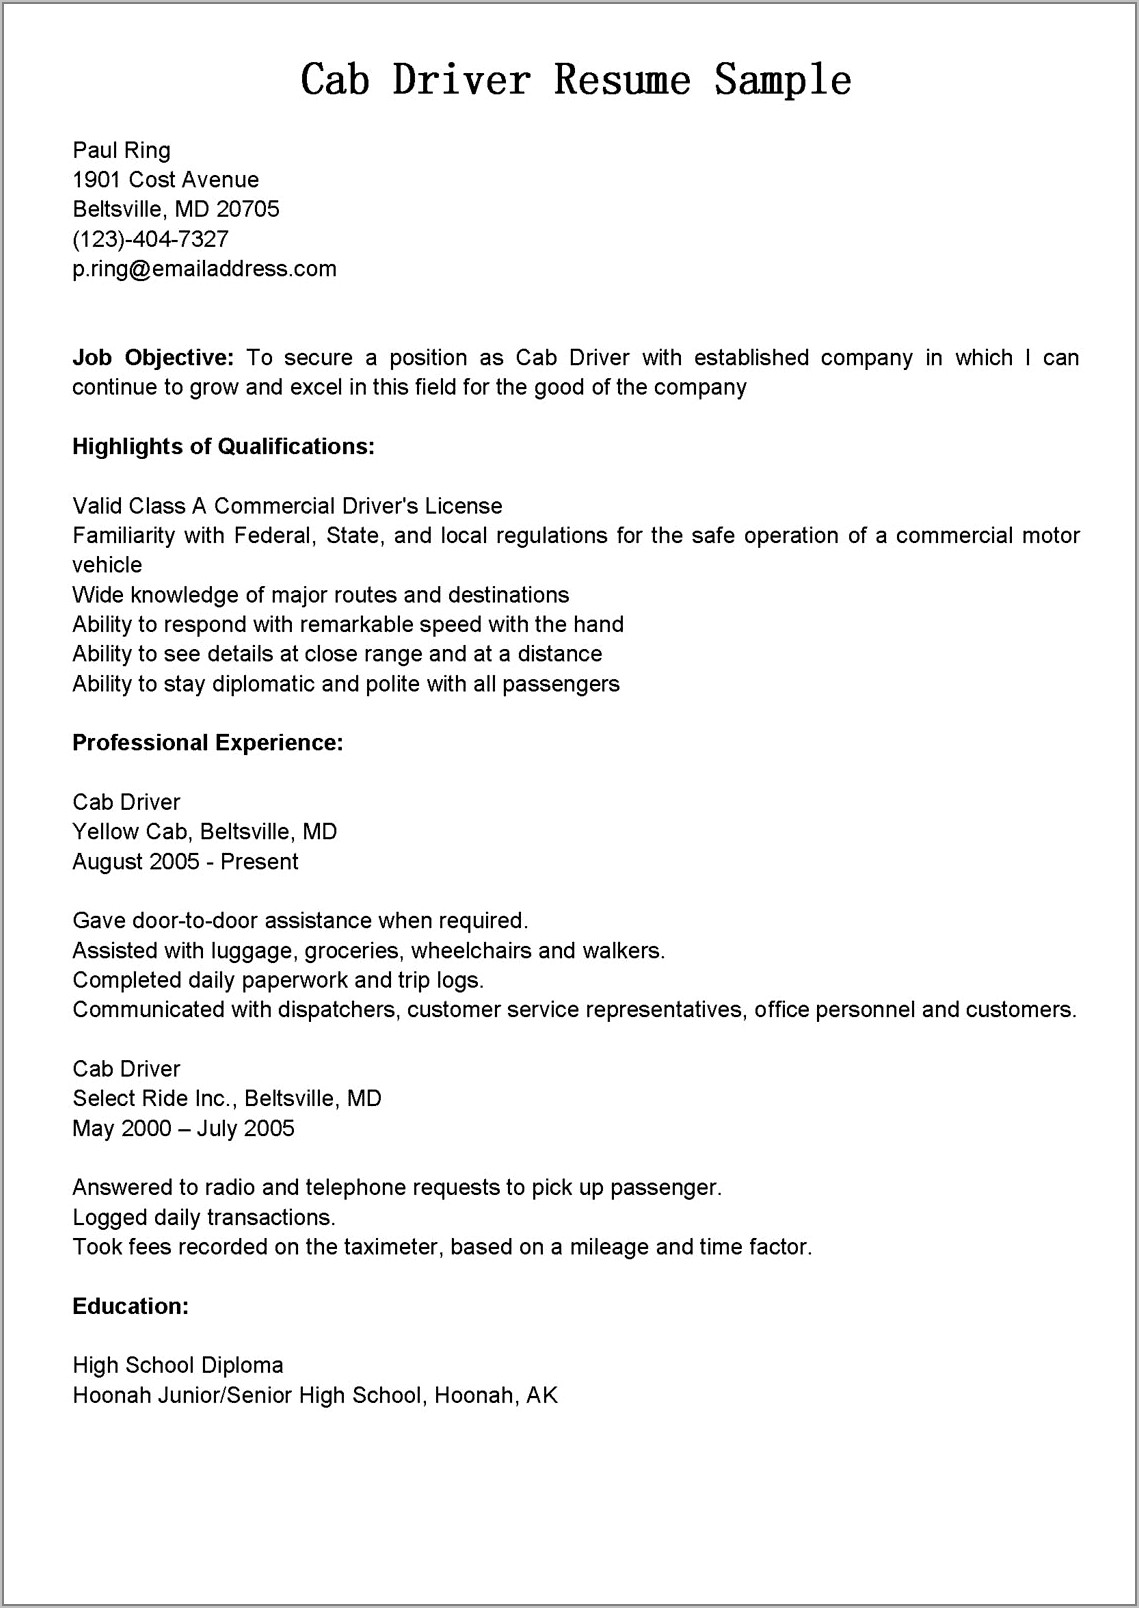 Sample Resume For Taxi Driver Position